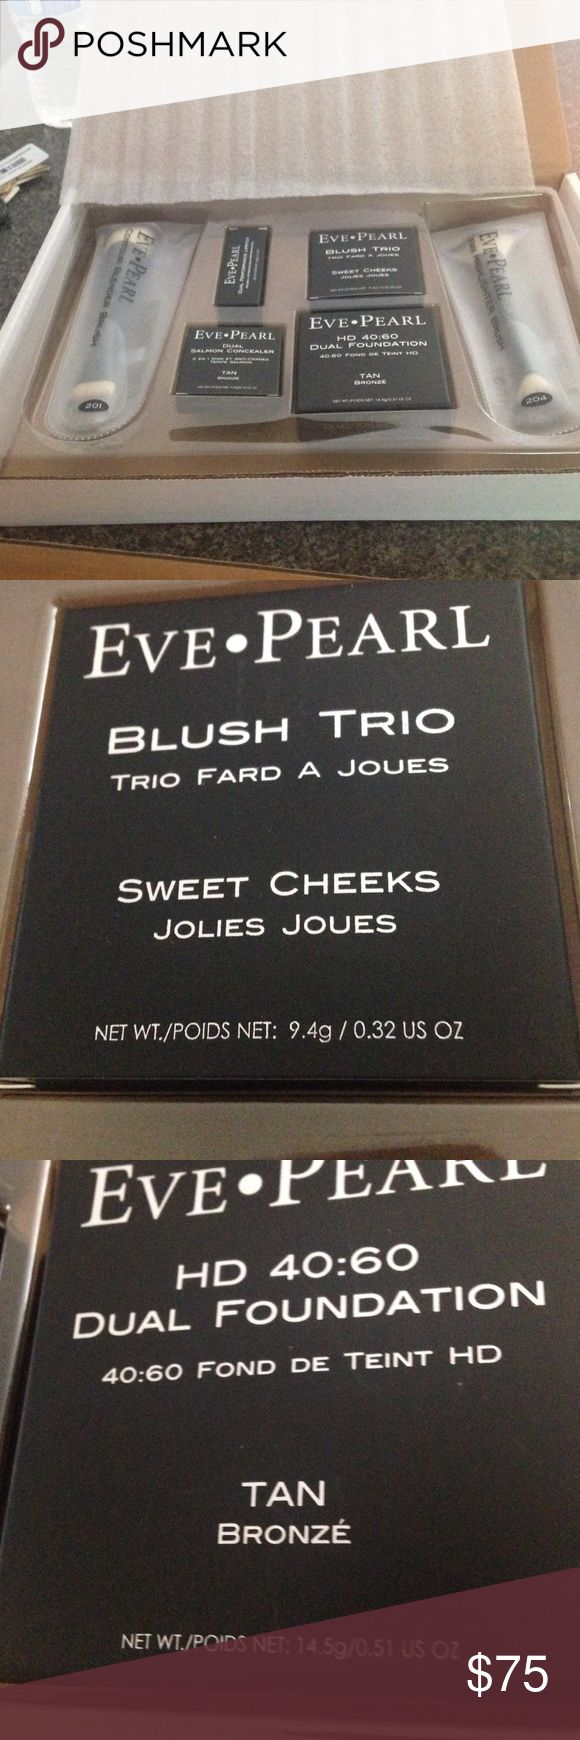 Eve Pearl as sold on QVC. Tan. New. Fantastic deal! Dual Salmon Concealer. Park Ave Rose Lipstick, foundation, Blush trio, and two brushes. This is truly a bargain! Eve Pearl.  Makeup